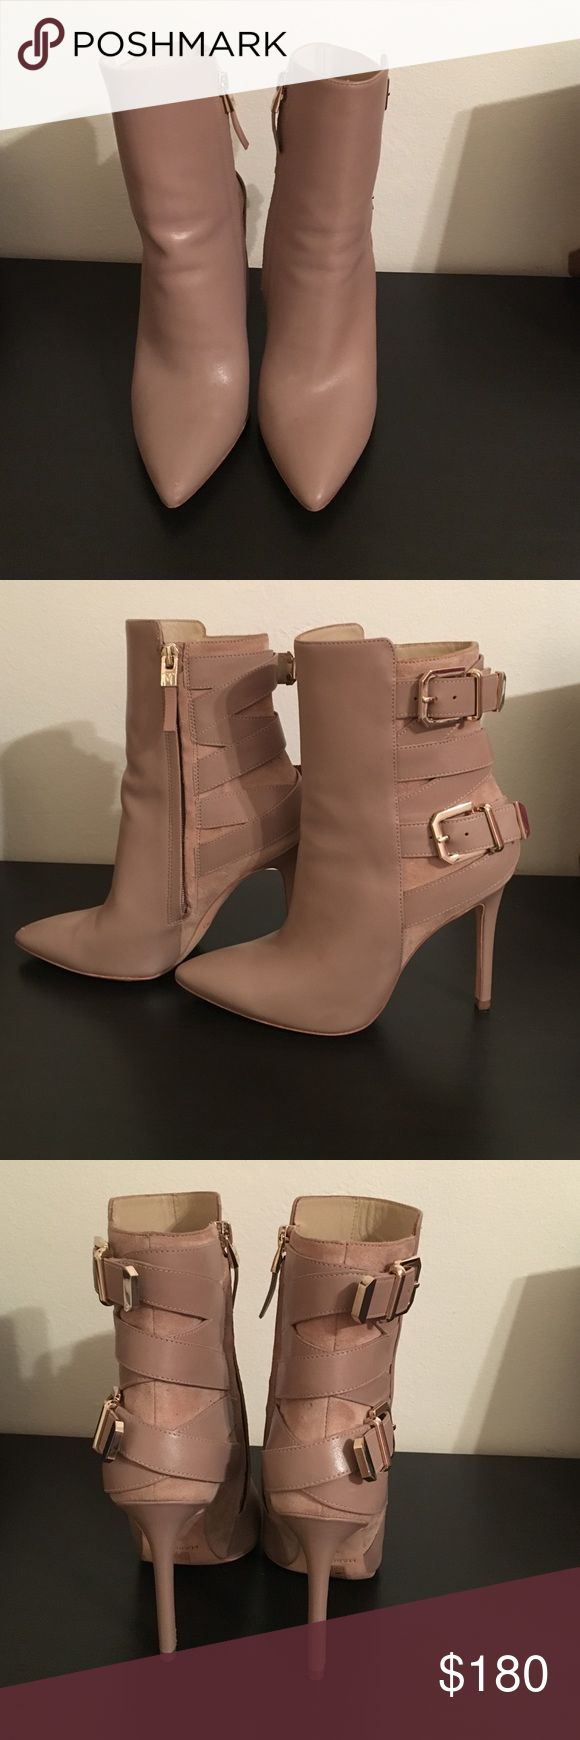 MARCIANO BIANCA BOOTIES Marciano Bianca Booties Guess by Marciano Shoes Ankle Boots & Booties